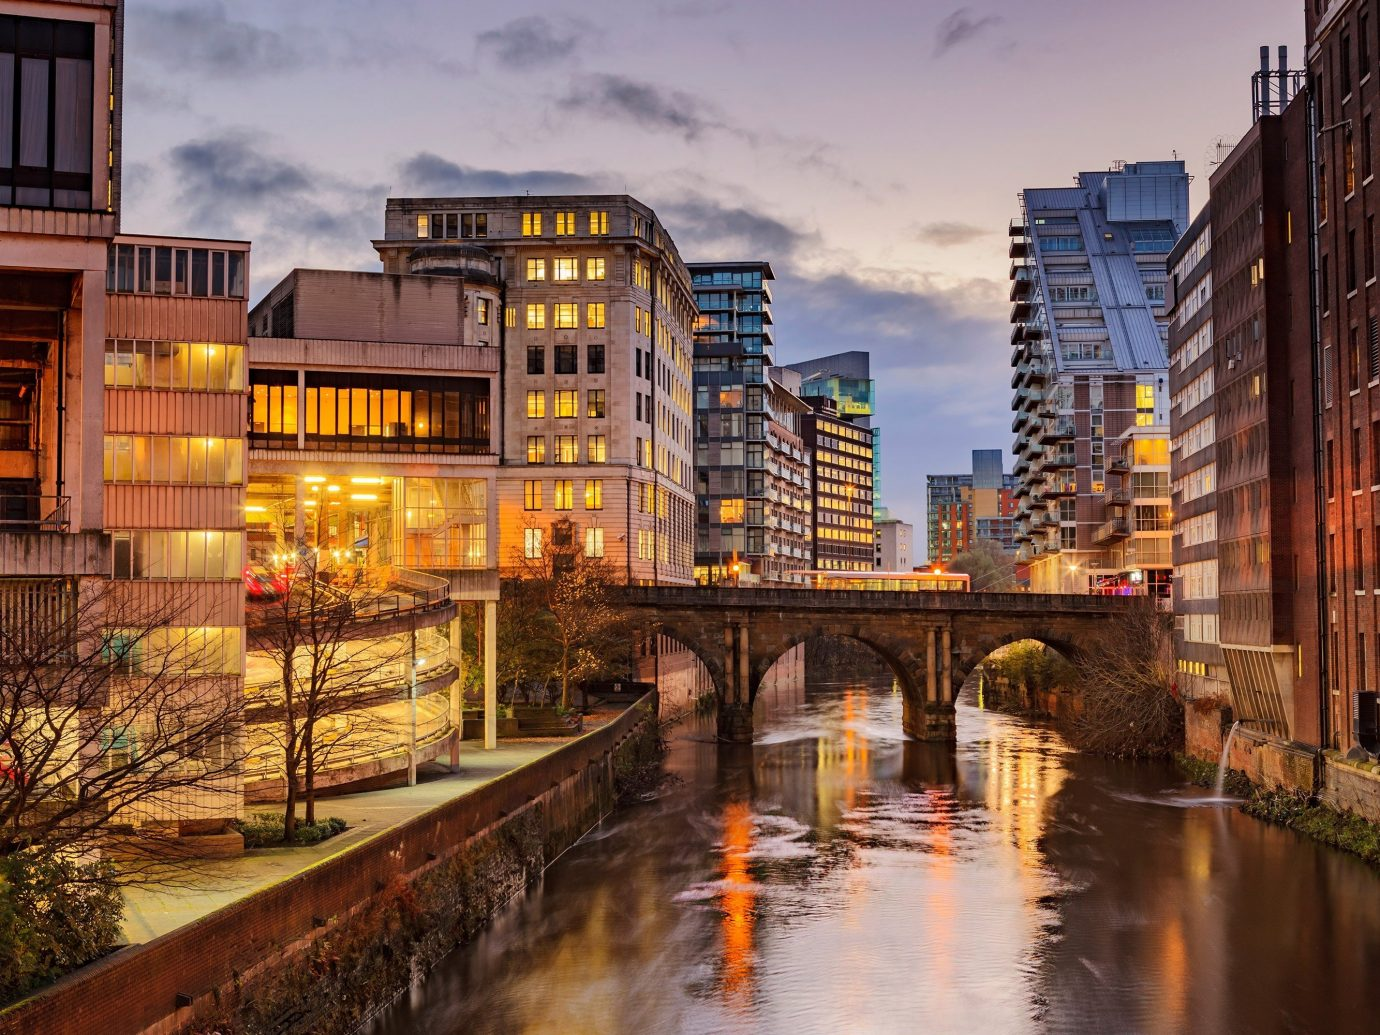 Trip Ideas outdoor geographical feature Town cityscape City reflection urban area human settlement neighbourhood waterway Canal evening River Downtown